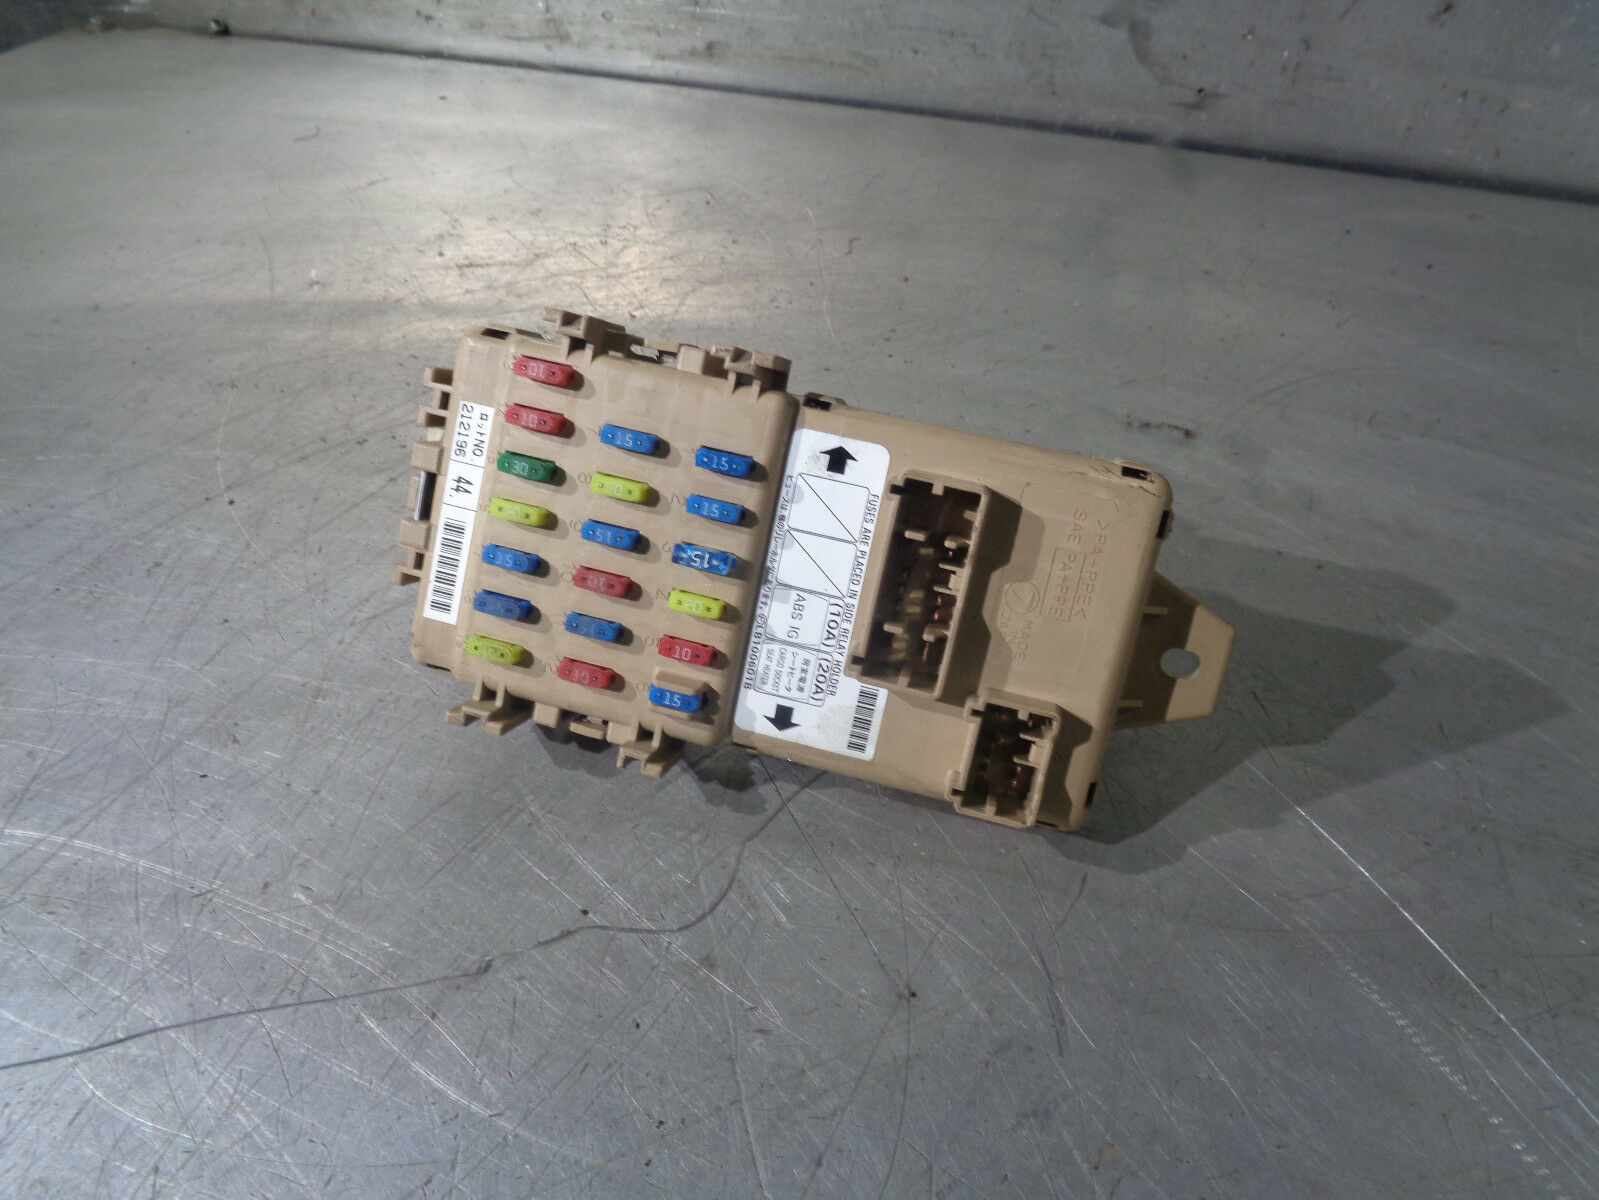 Subaru Impreza Blobeye Wrx 03 05 Interior Electrical Fuse Box 1 Of 3only Available